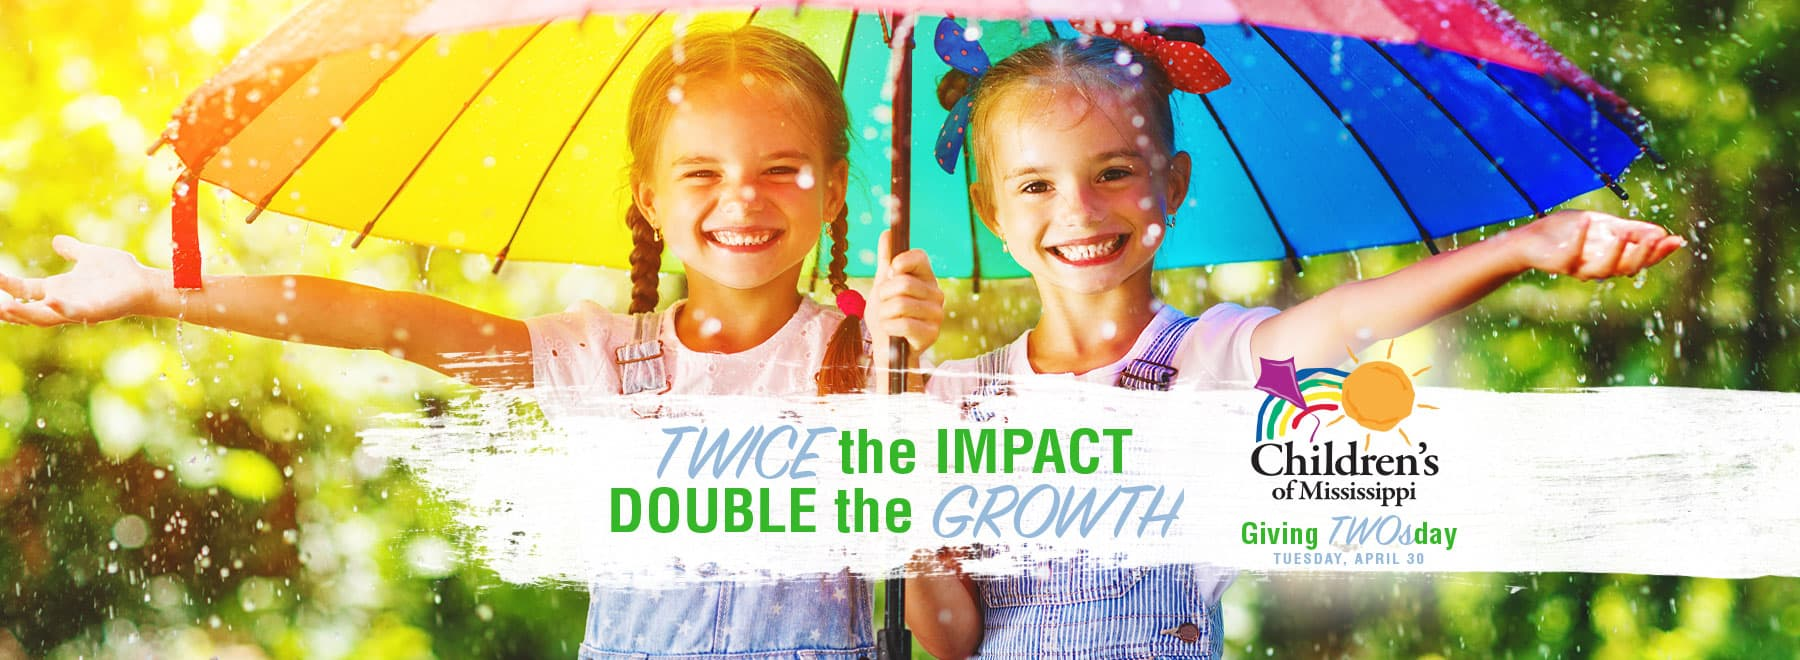 Twice the Impact Double the Growth. Giving TWOsday. Tuesday, April 30.